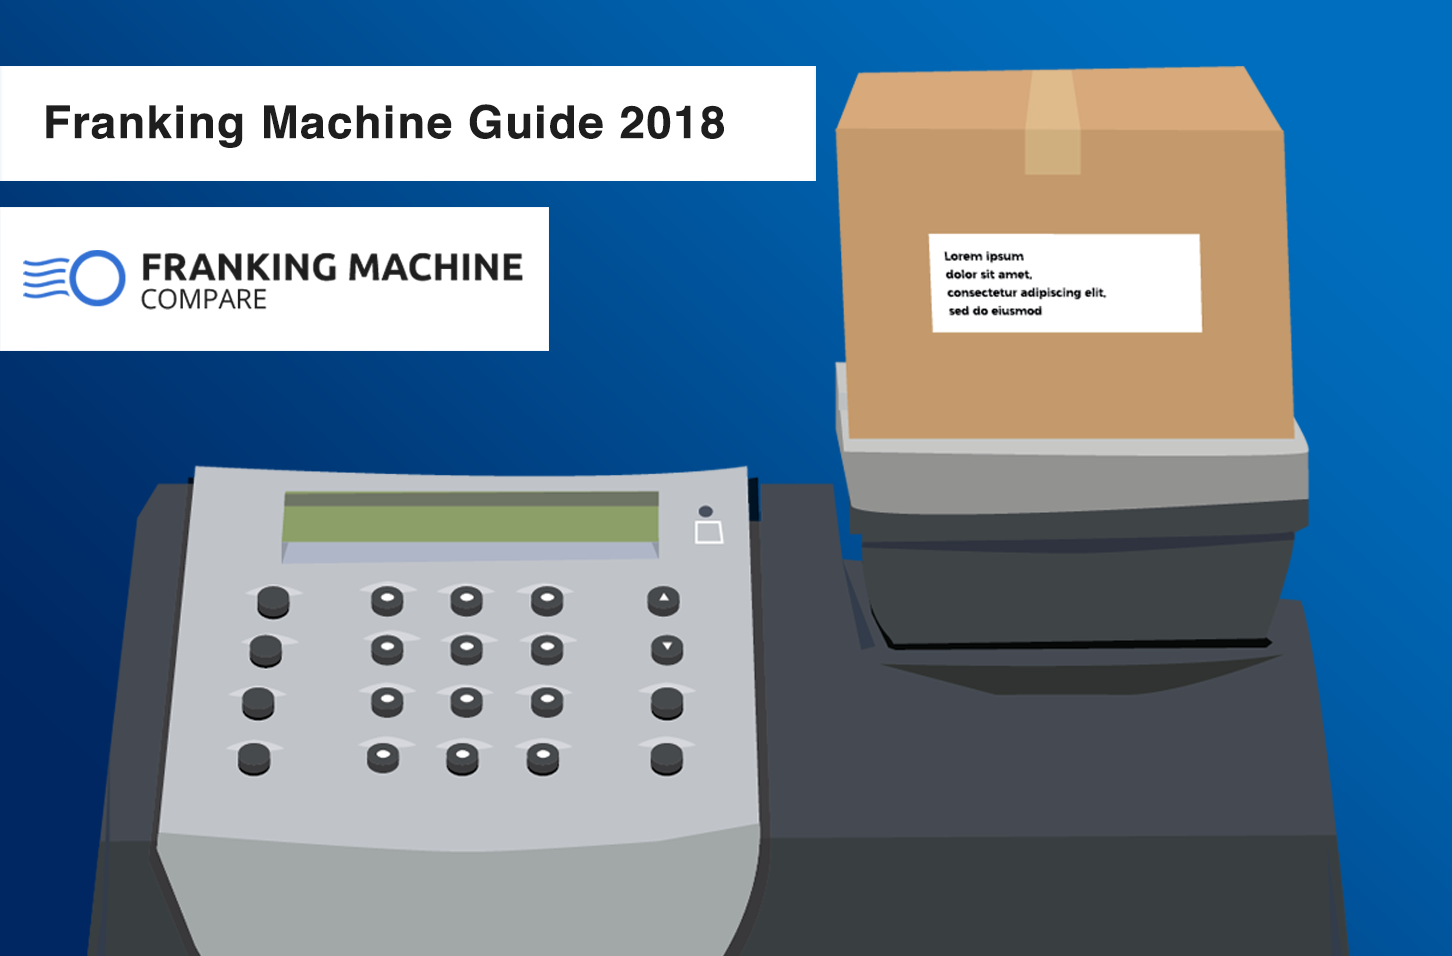 Royal Mail Approved Franking Machine Supplier List